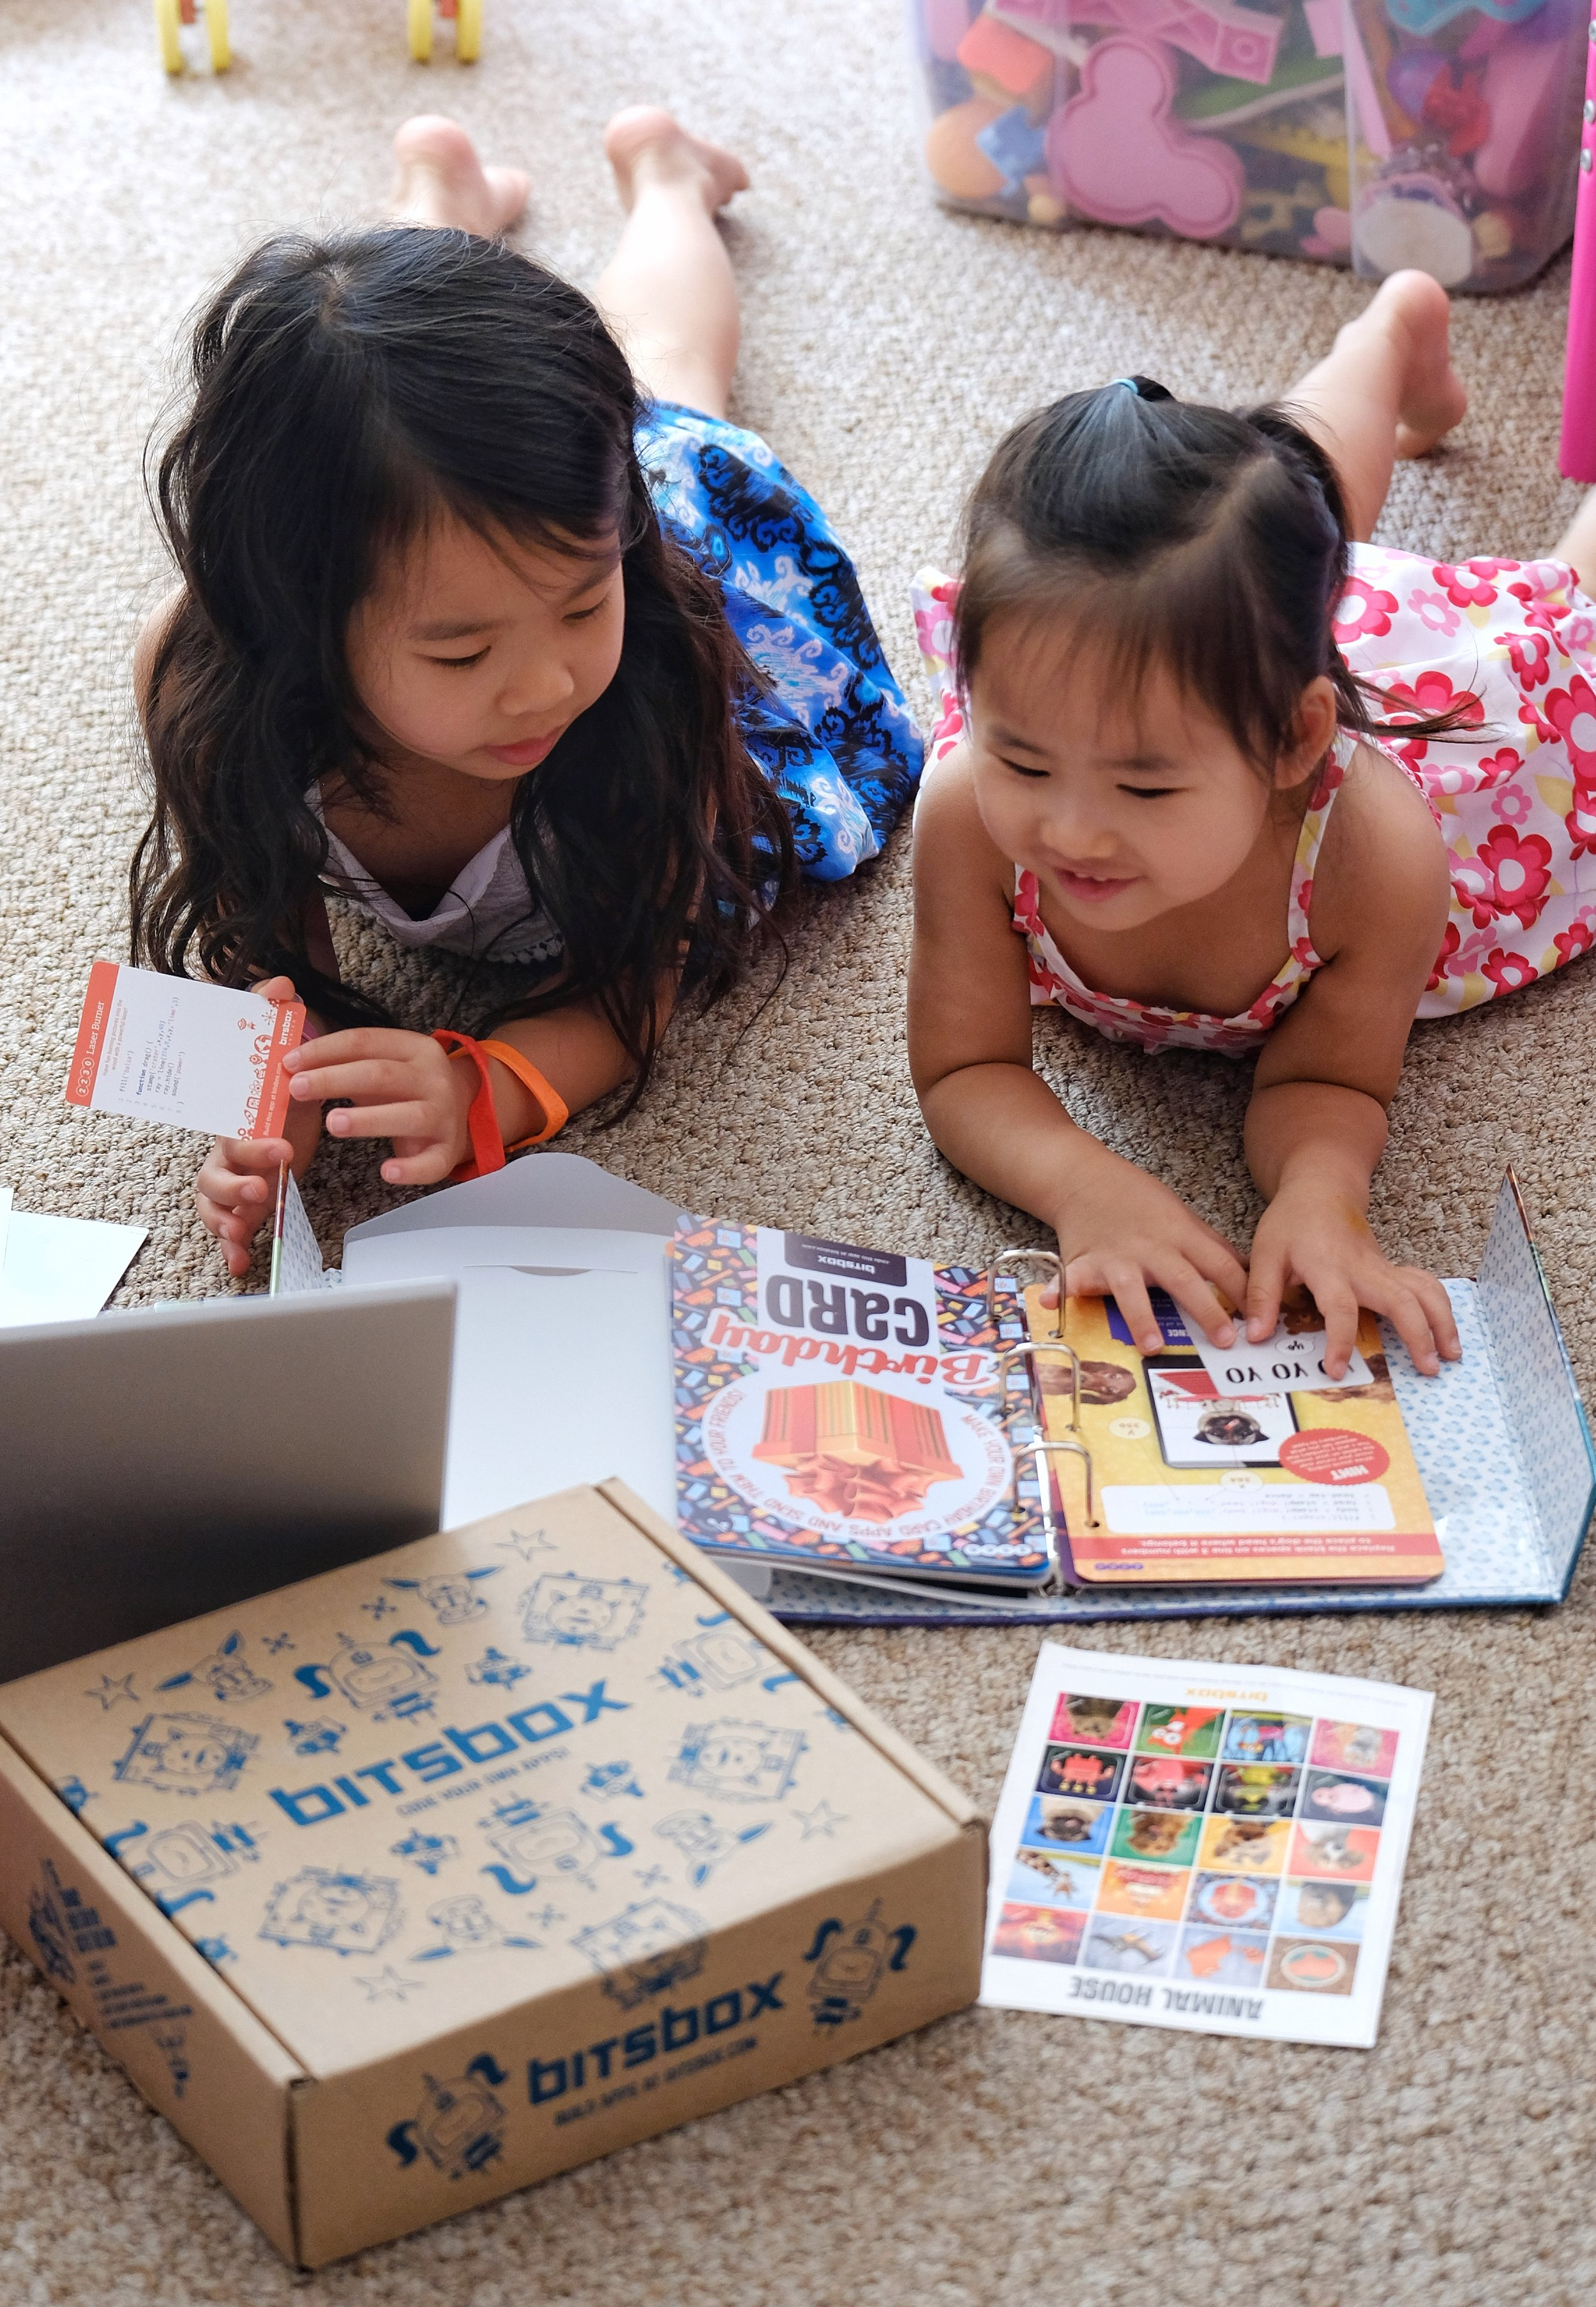 My kids are loving the  Bitsbox coding for kids . It's their first time using or coding and they really enjoy it. Let's hope there' a future in it!